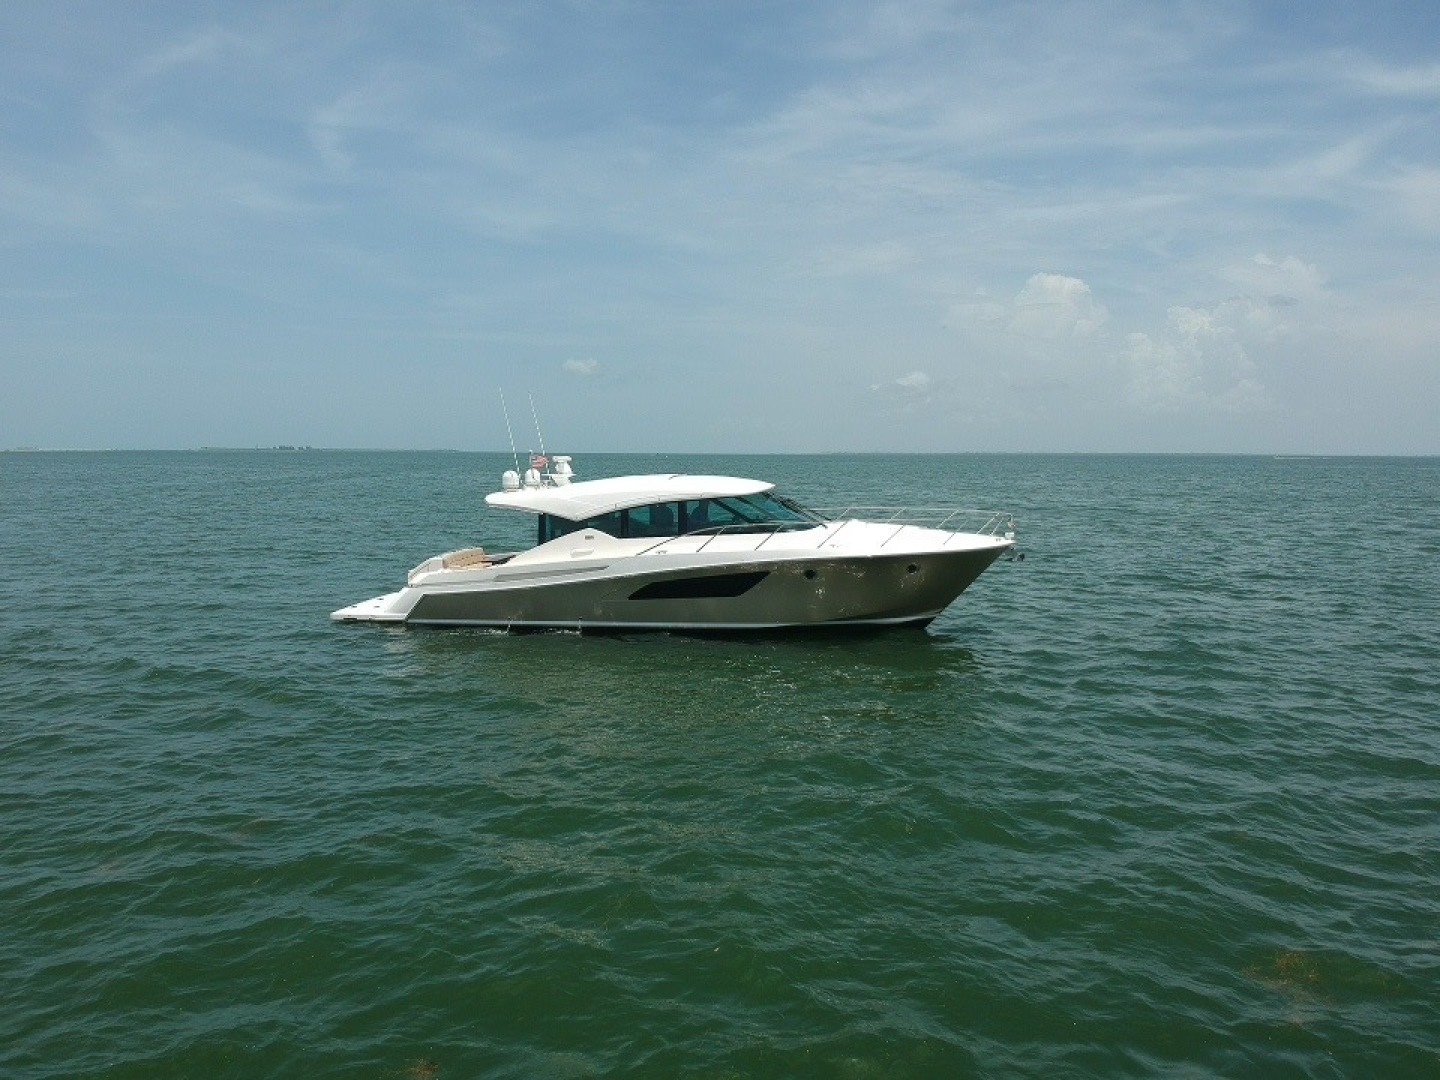 Tiara-50 Coupe 2014-Hoosier Daddy Anna Maria-Florida-United States-2014 Tiara 50 Coupe  Hoosier Daddy-1450885 | Thumbnail